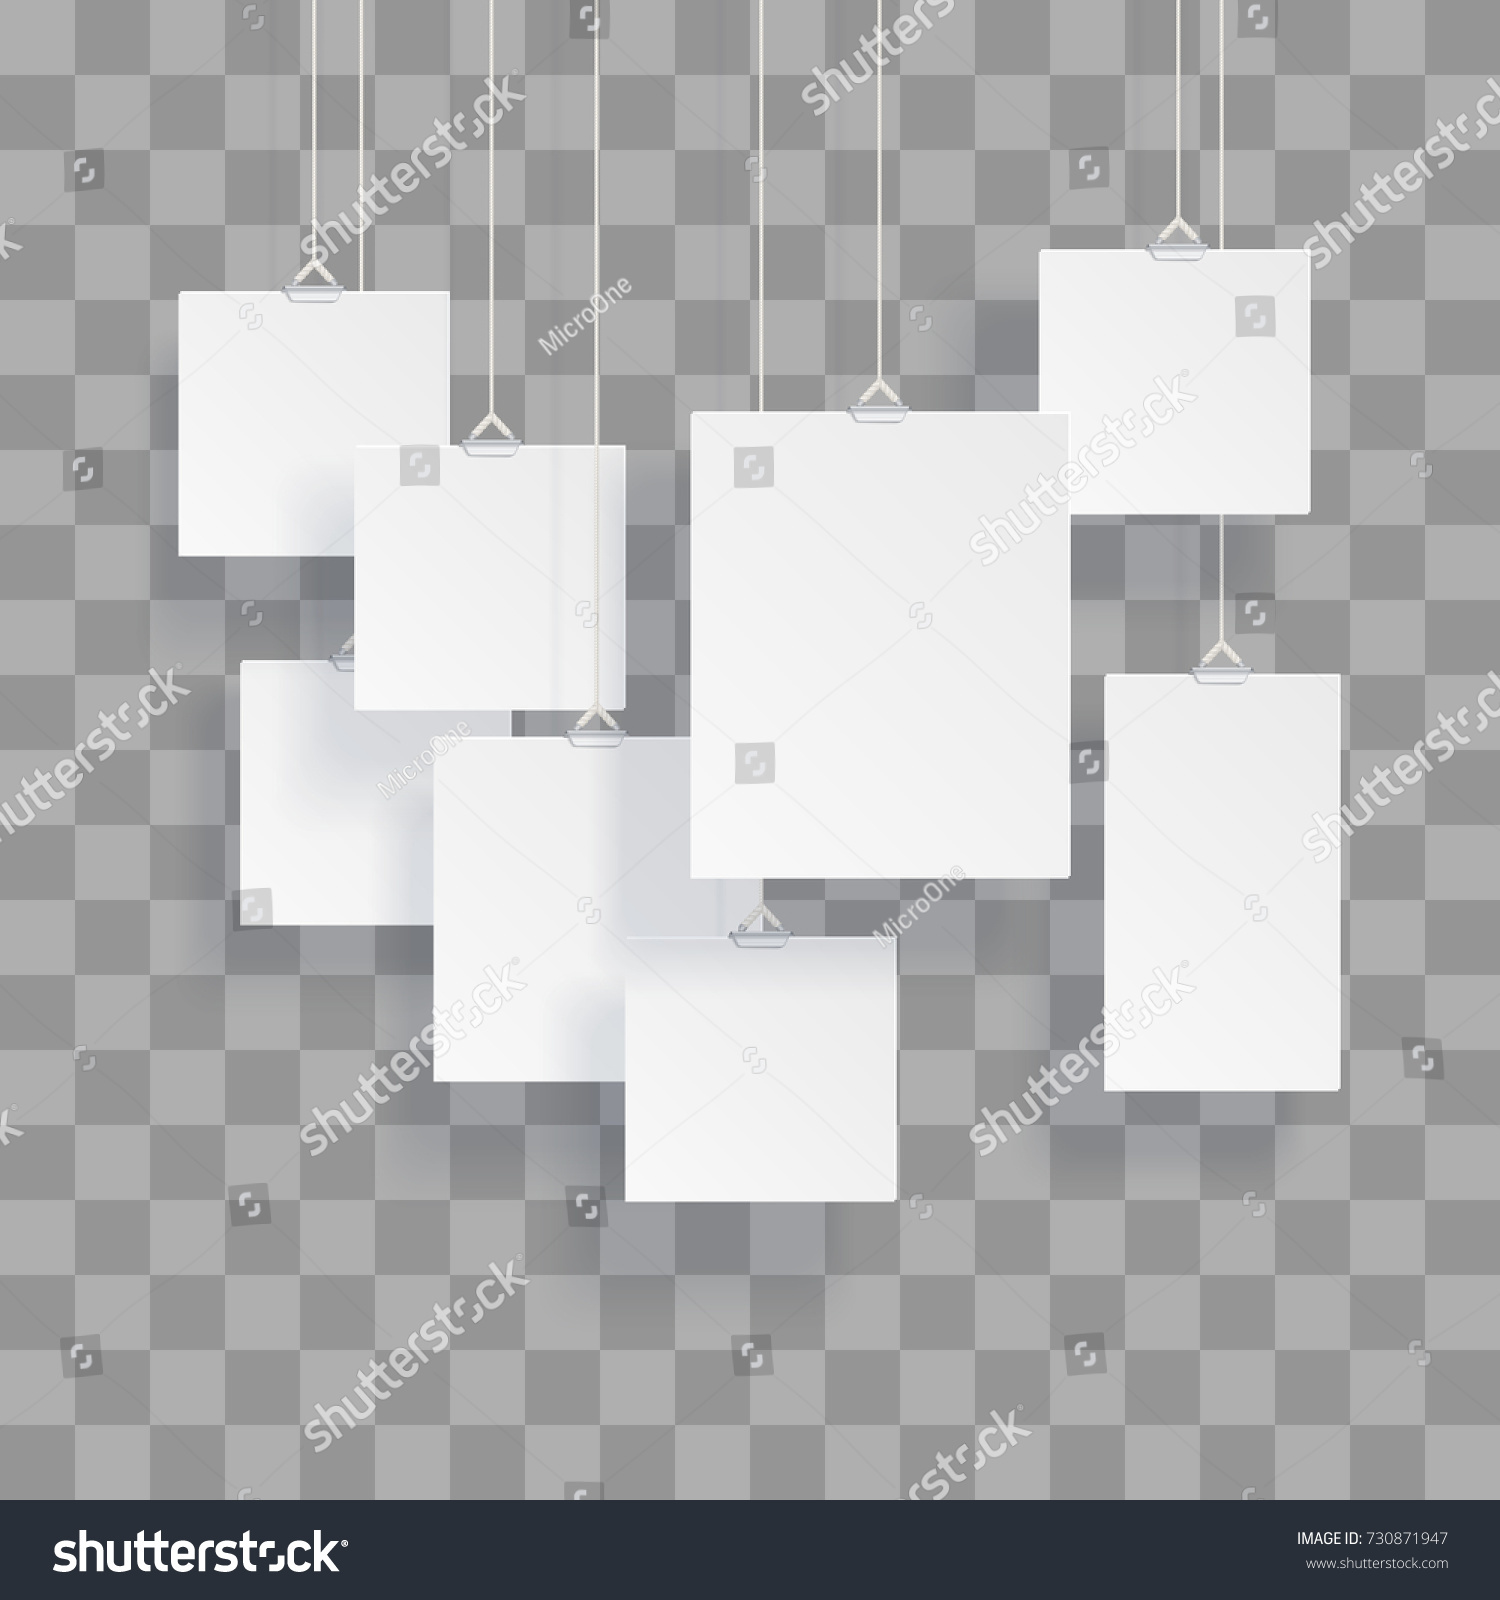 paper picture frames templates - zrom.tk